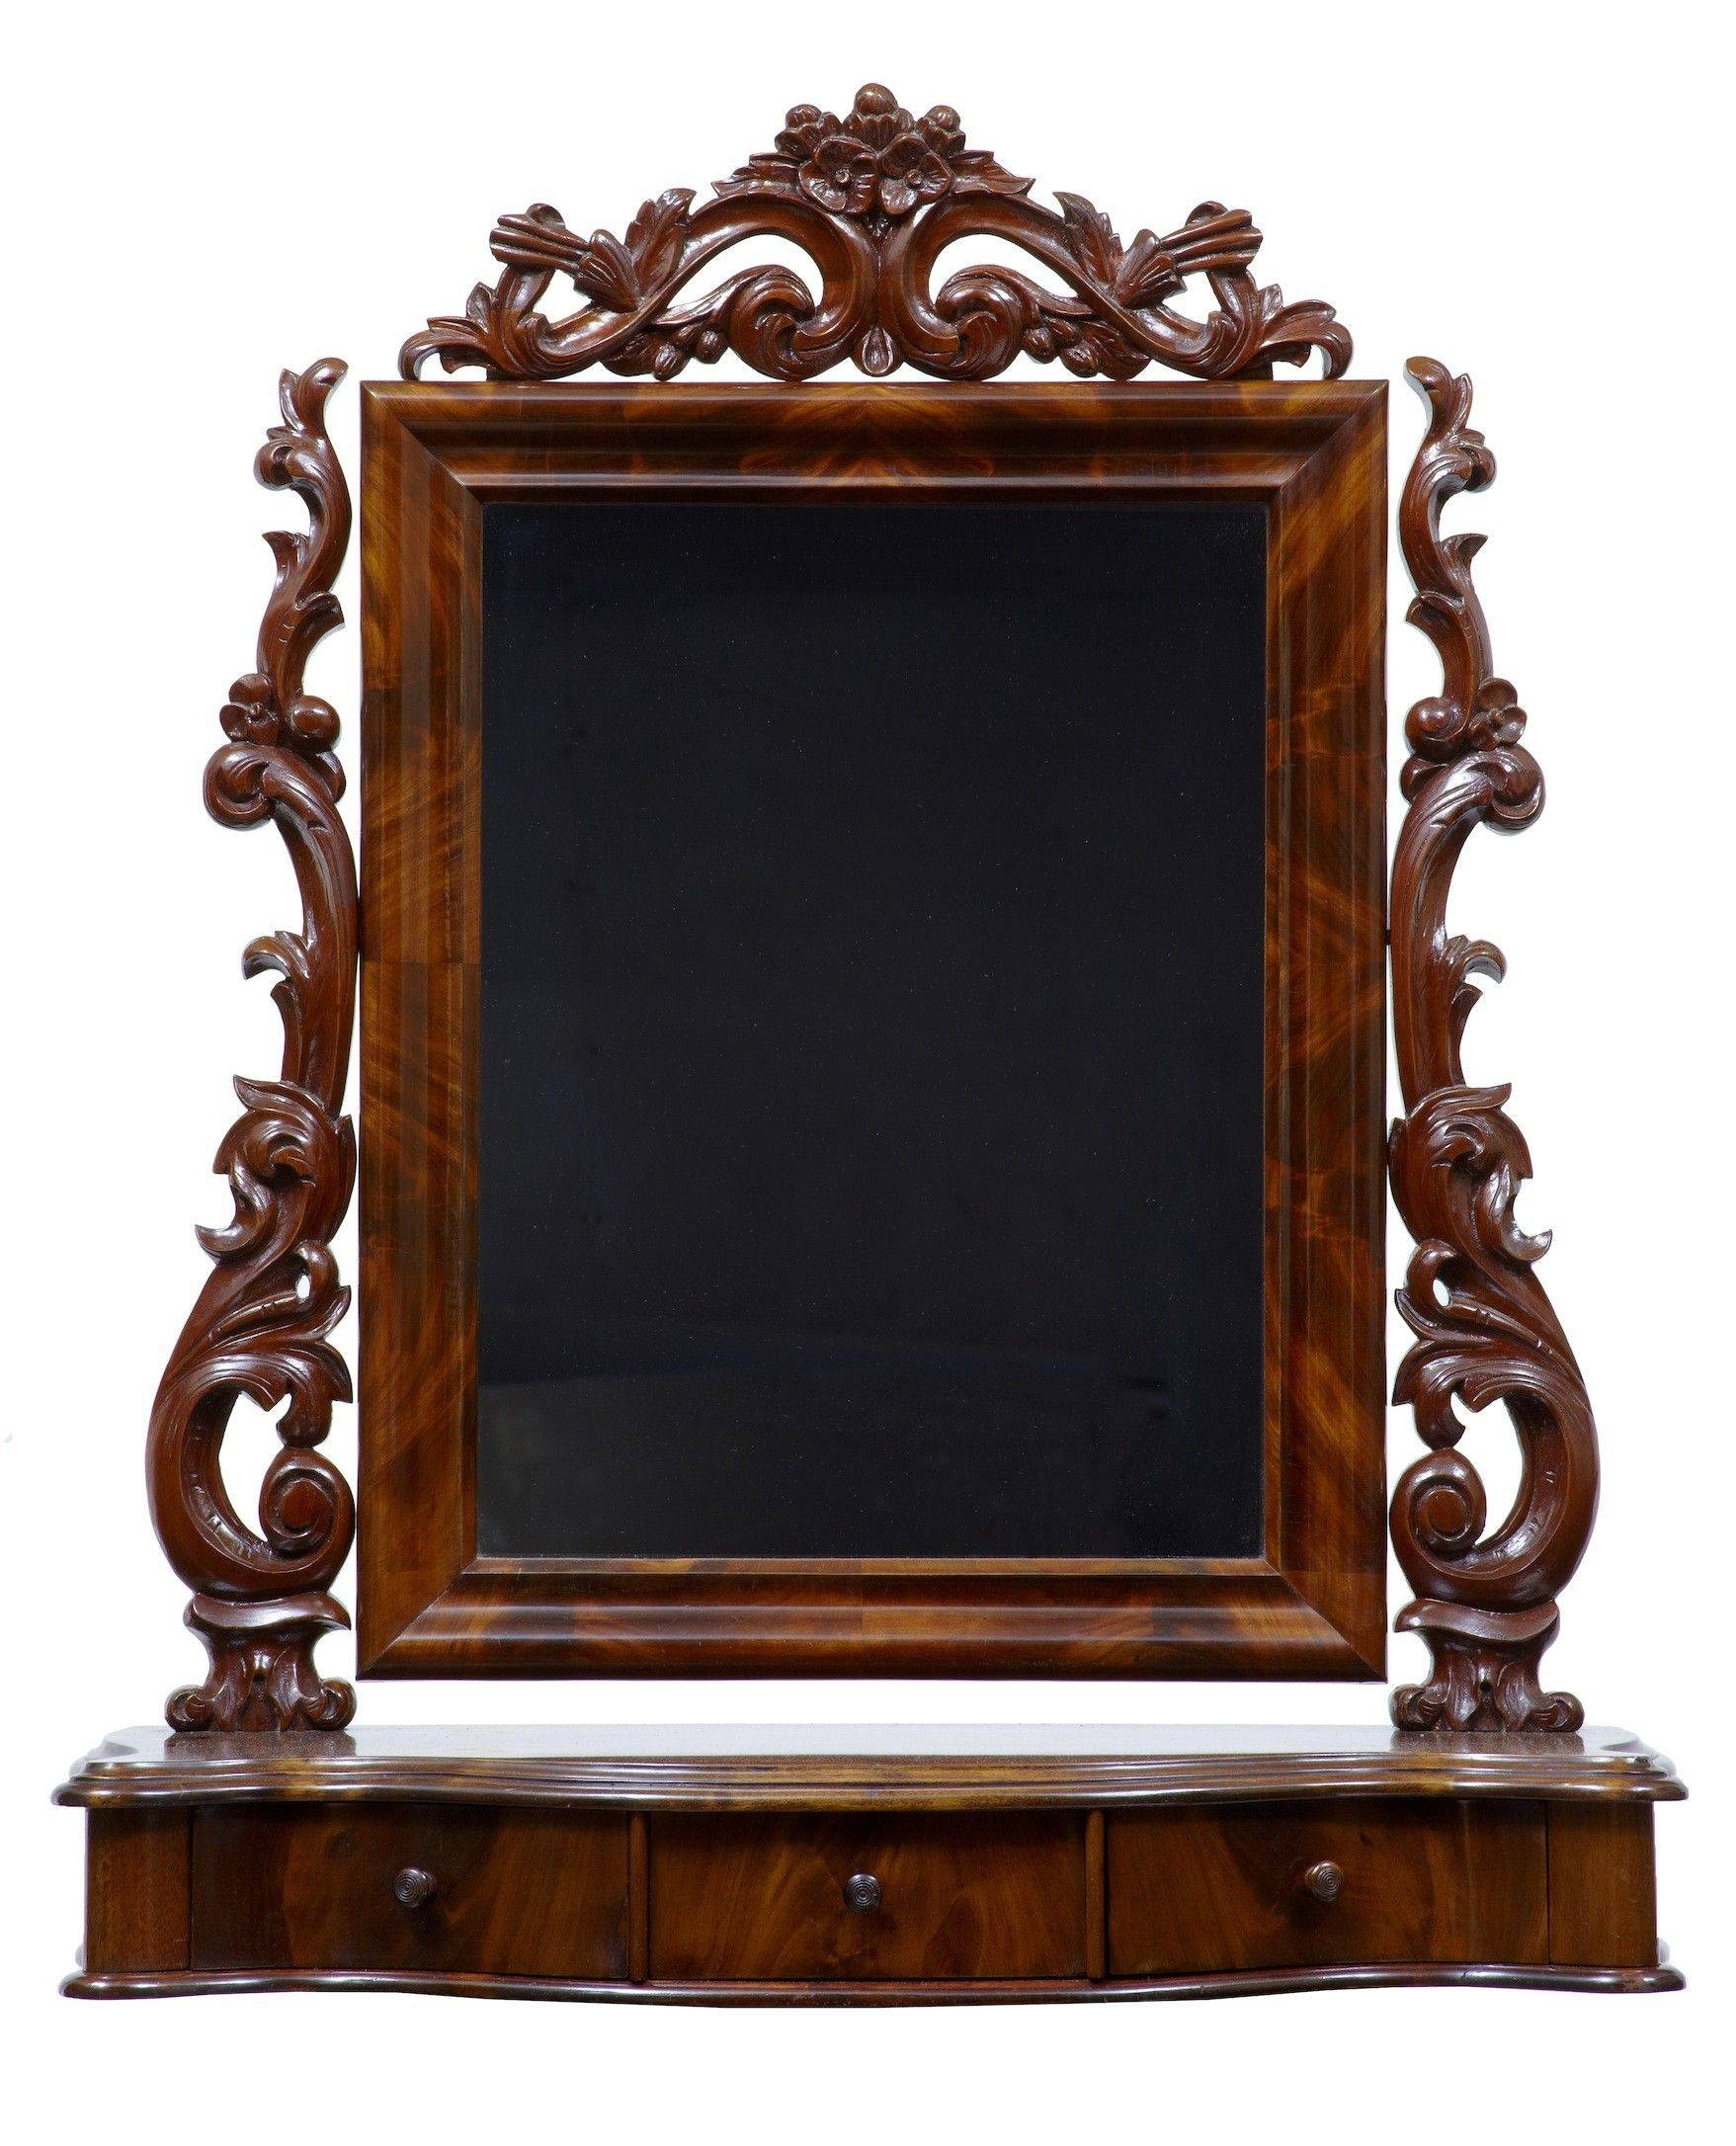 19th Century Carved Mahogany Freestanding Dressing Table Mirror (c Inside Standing Table Mirrors (View 11 of 15)